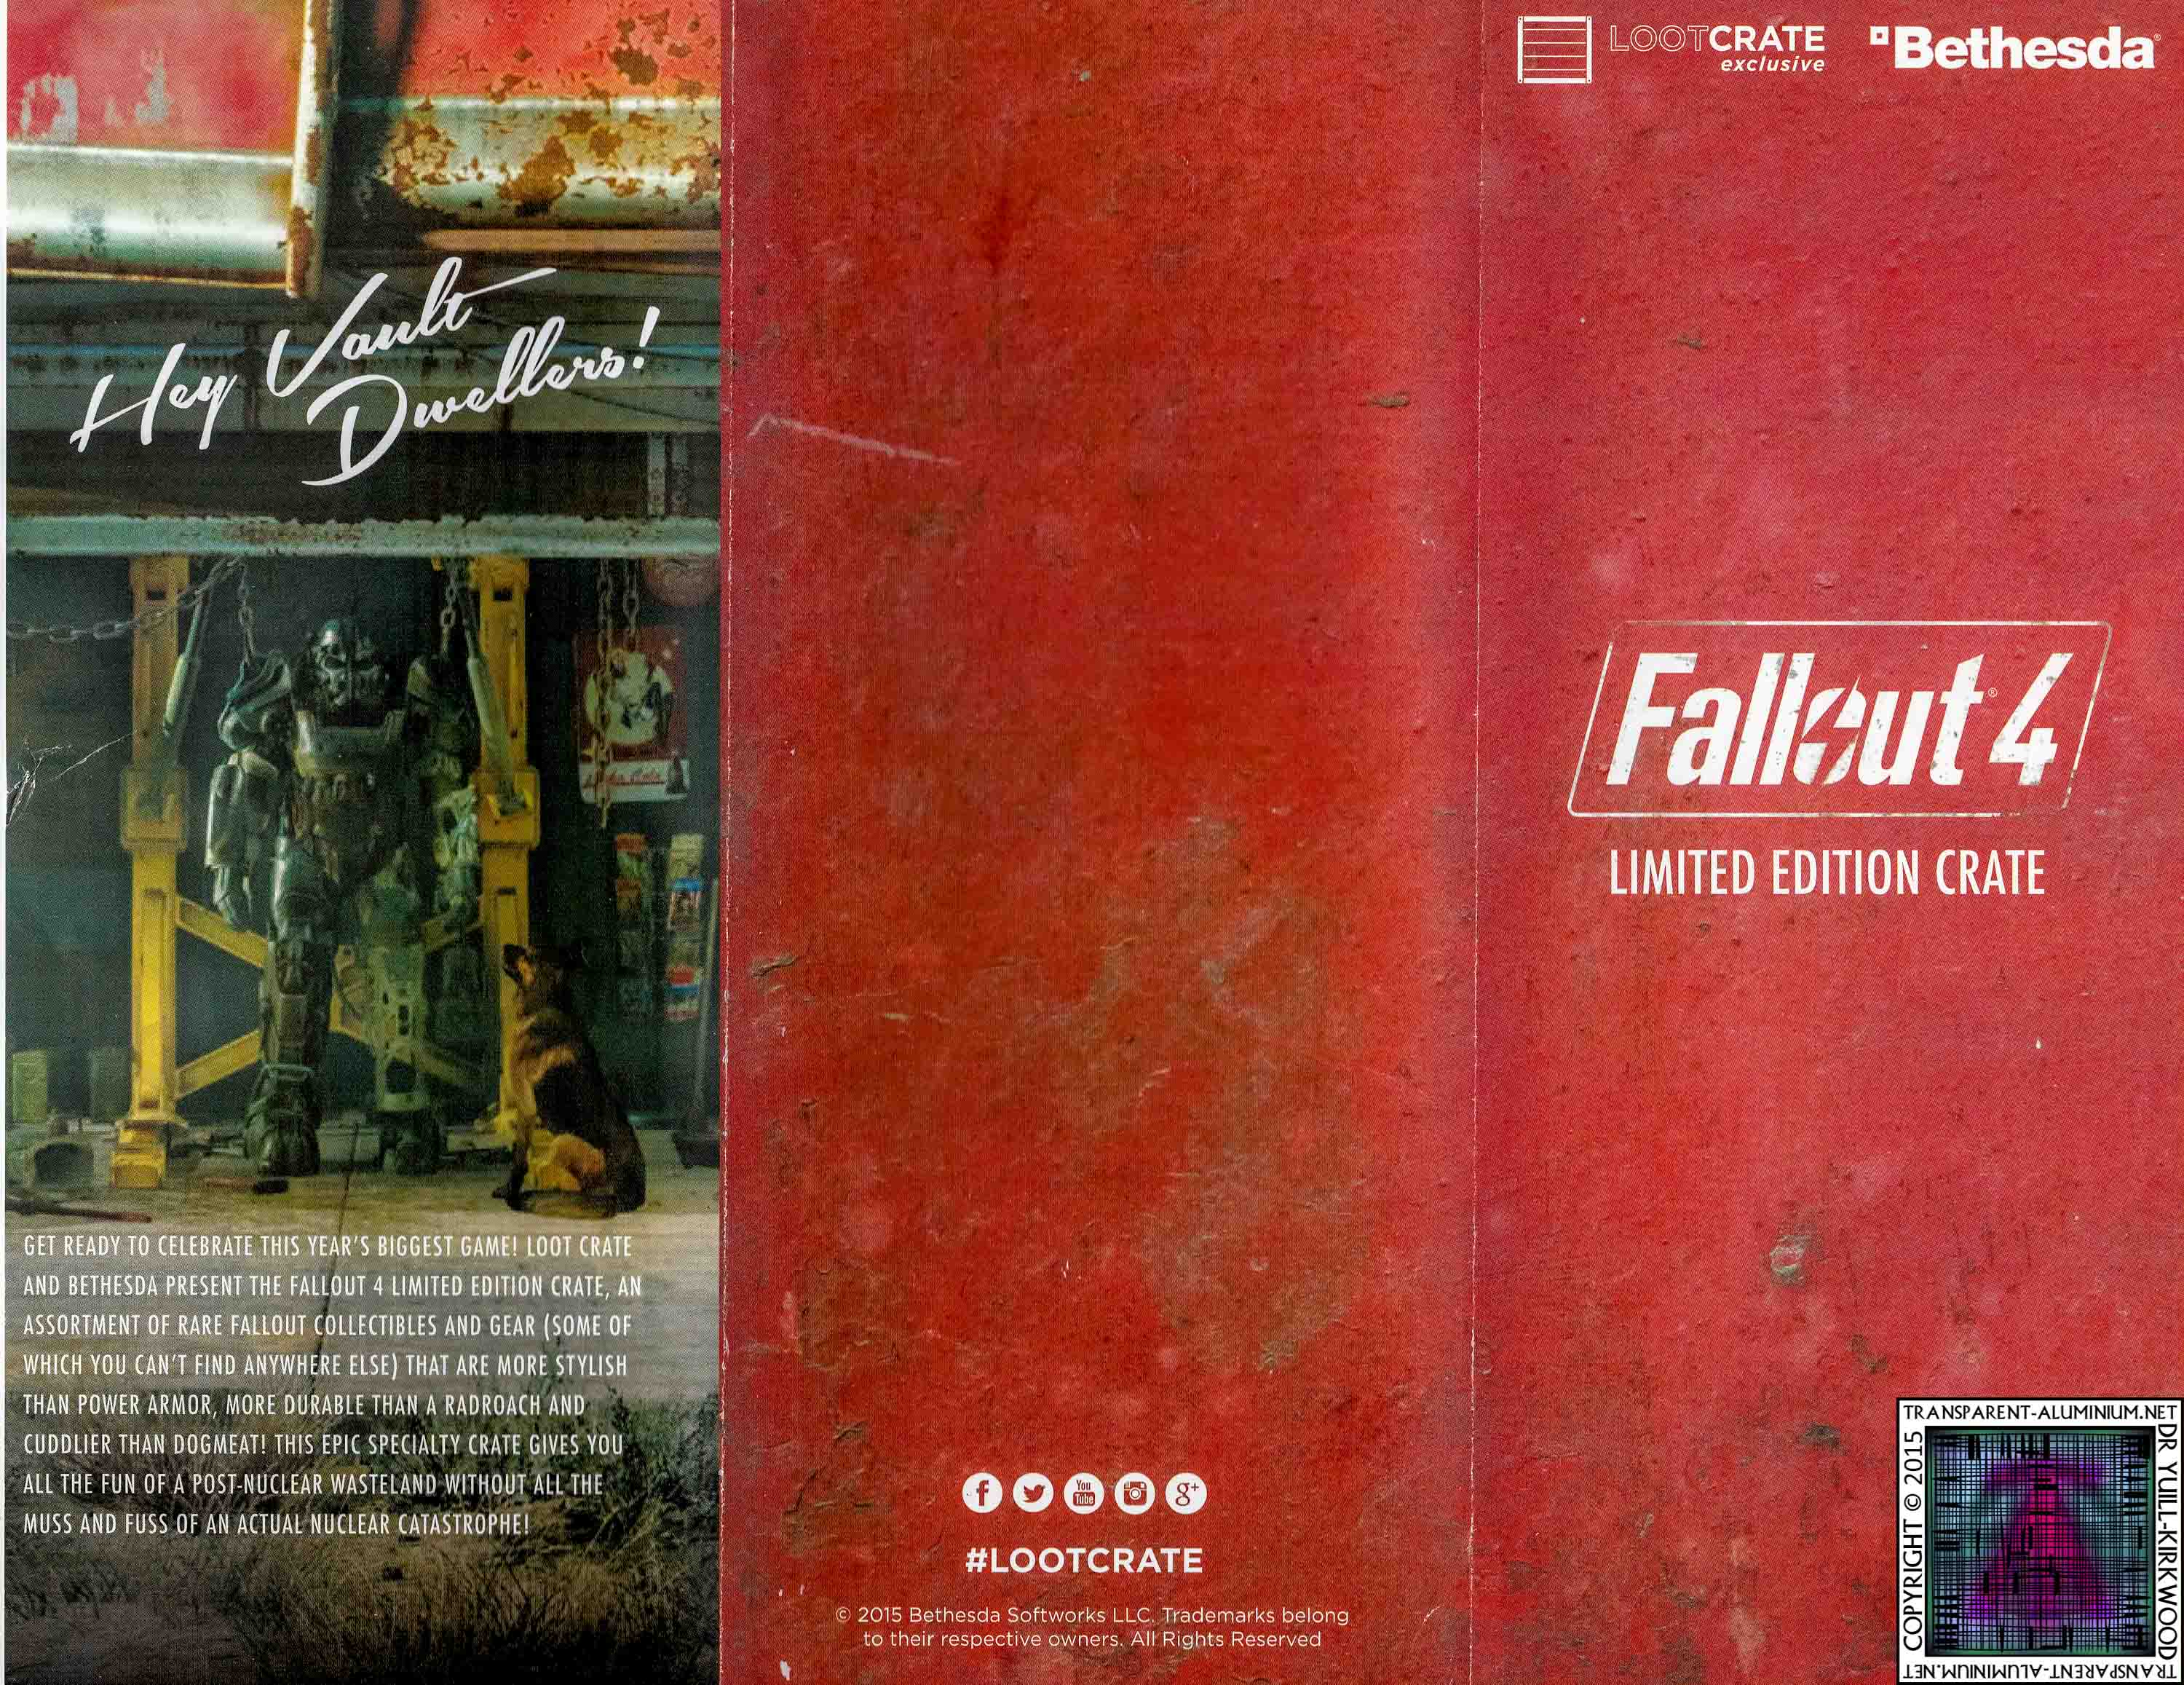 Loot Crate - Fallout 4 Limited Edition (3).jpg